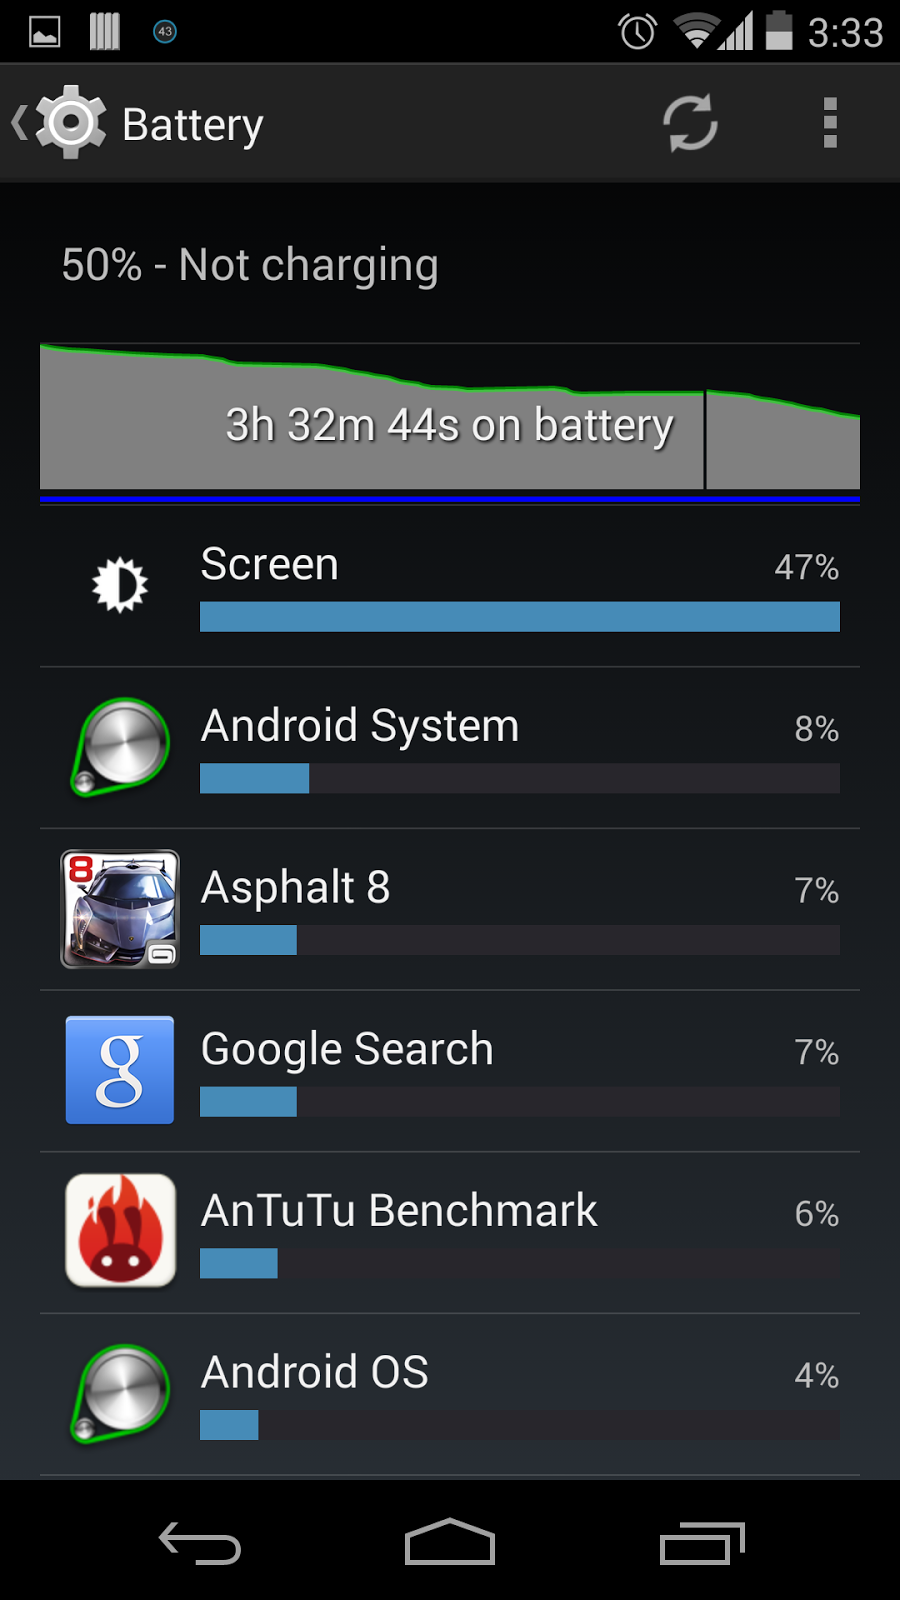 Google+LG+Nexus+5+Android+KitKat+Review+Handson+Detailed+Benchmark++%252825%2529.png